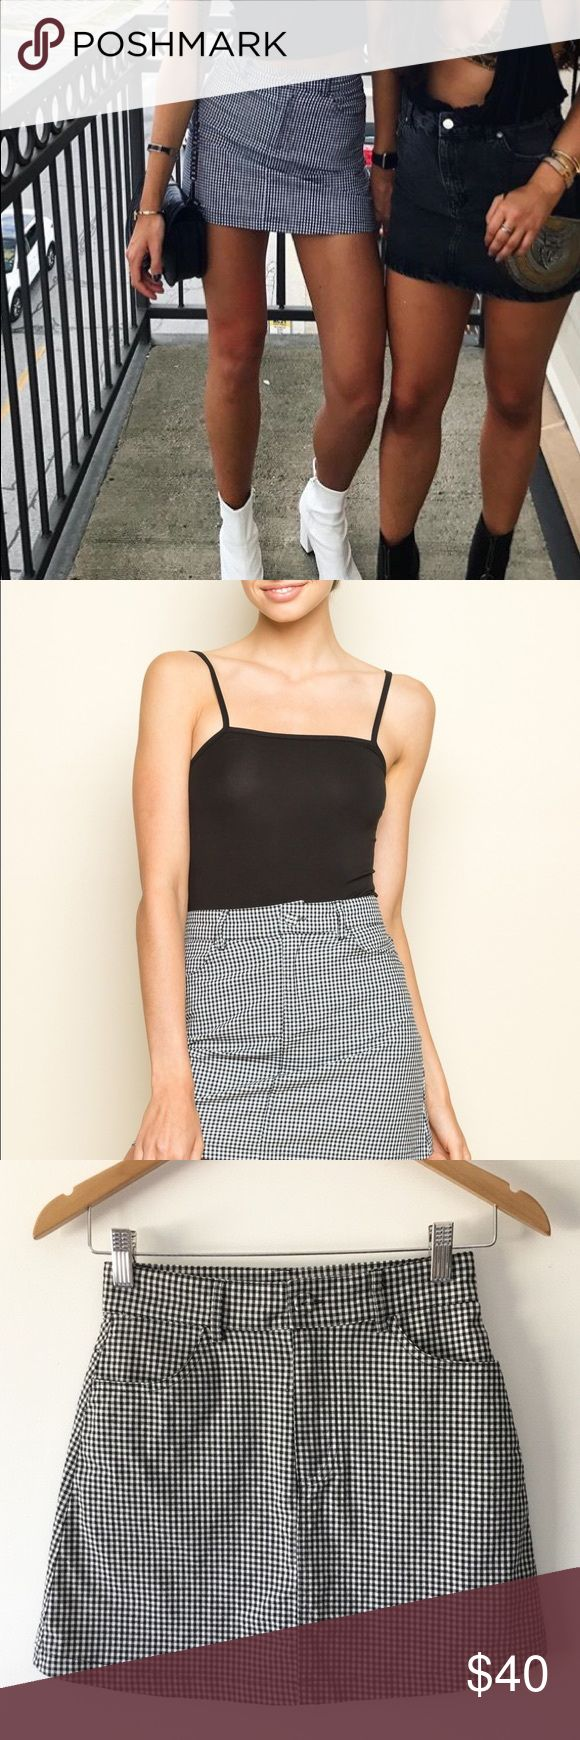 Brandy Melville Juliette Gingham Skirt Brandy Melville gingham juliette skirt nwot. one size fits all, probably would fit a small/0-2/24ish the best, but check brandy melville size chart online to confirm :) doesn't fit me but very cute skirt, in flawless condition! Brandy Melville Skirts Mini